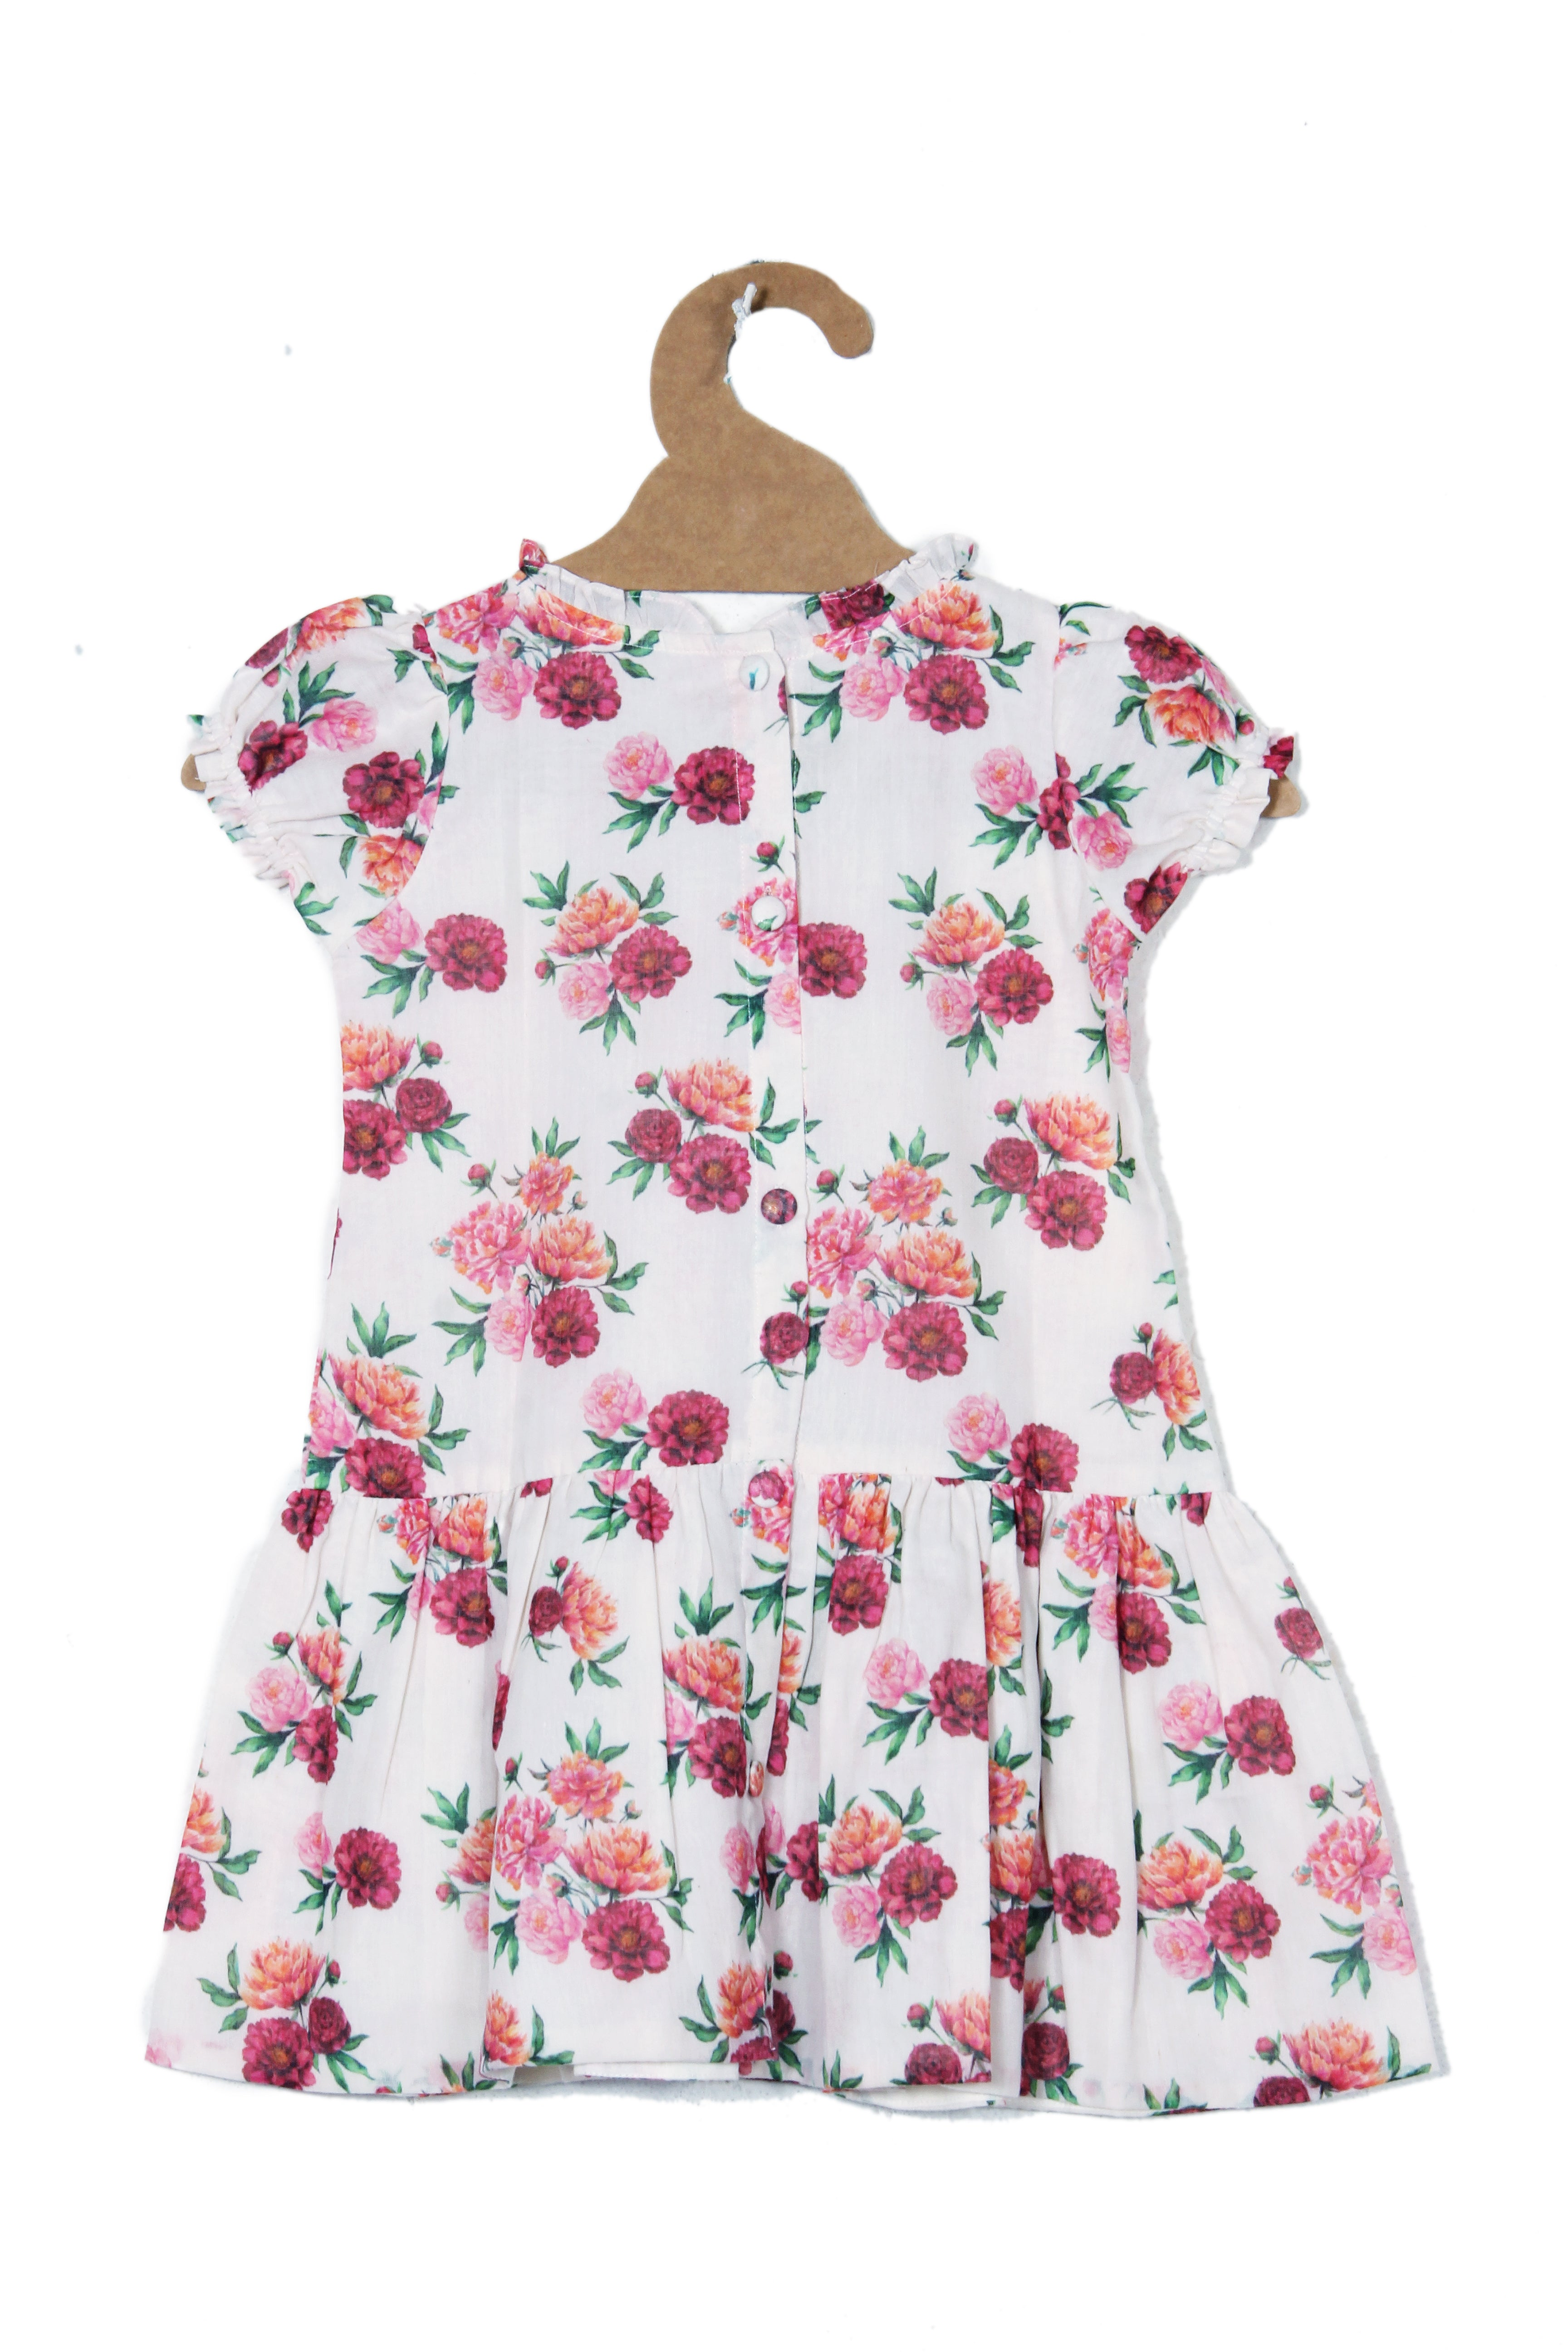 PRINTED DRESS IN MUL COTTON-RED AND MAROON SMALL FLOWERS